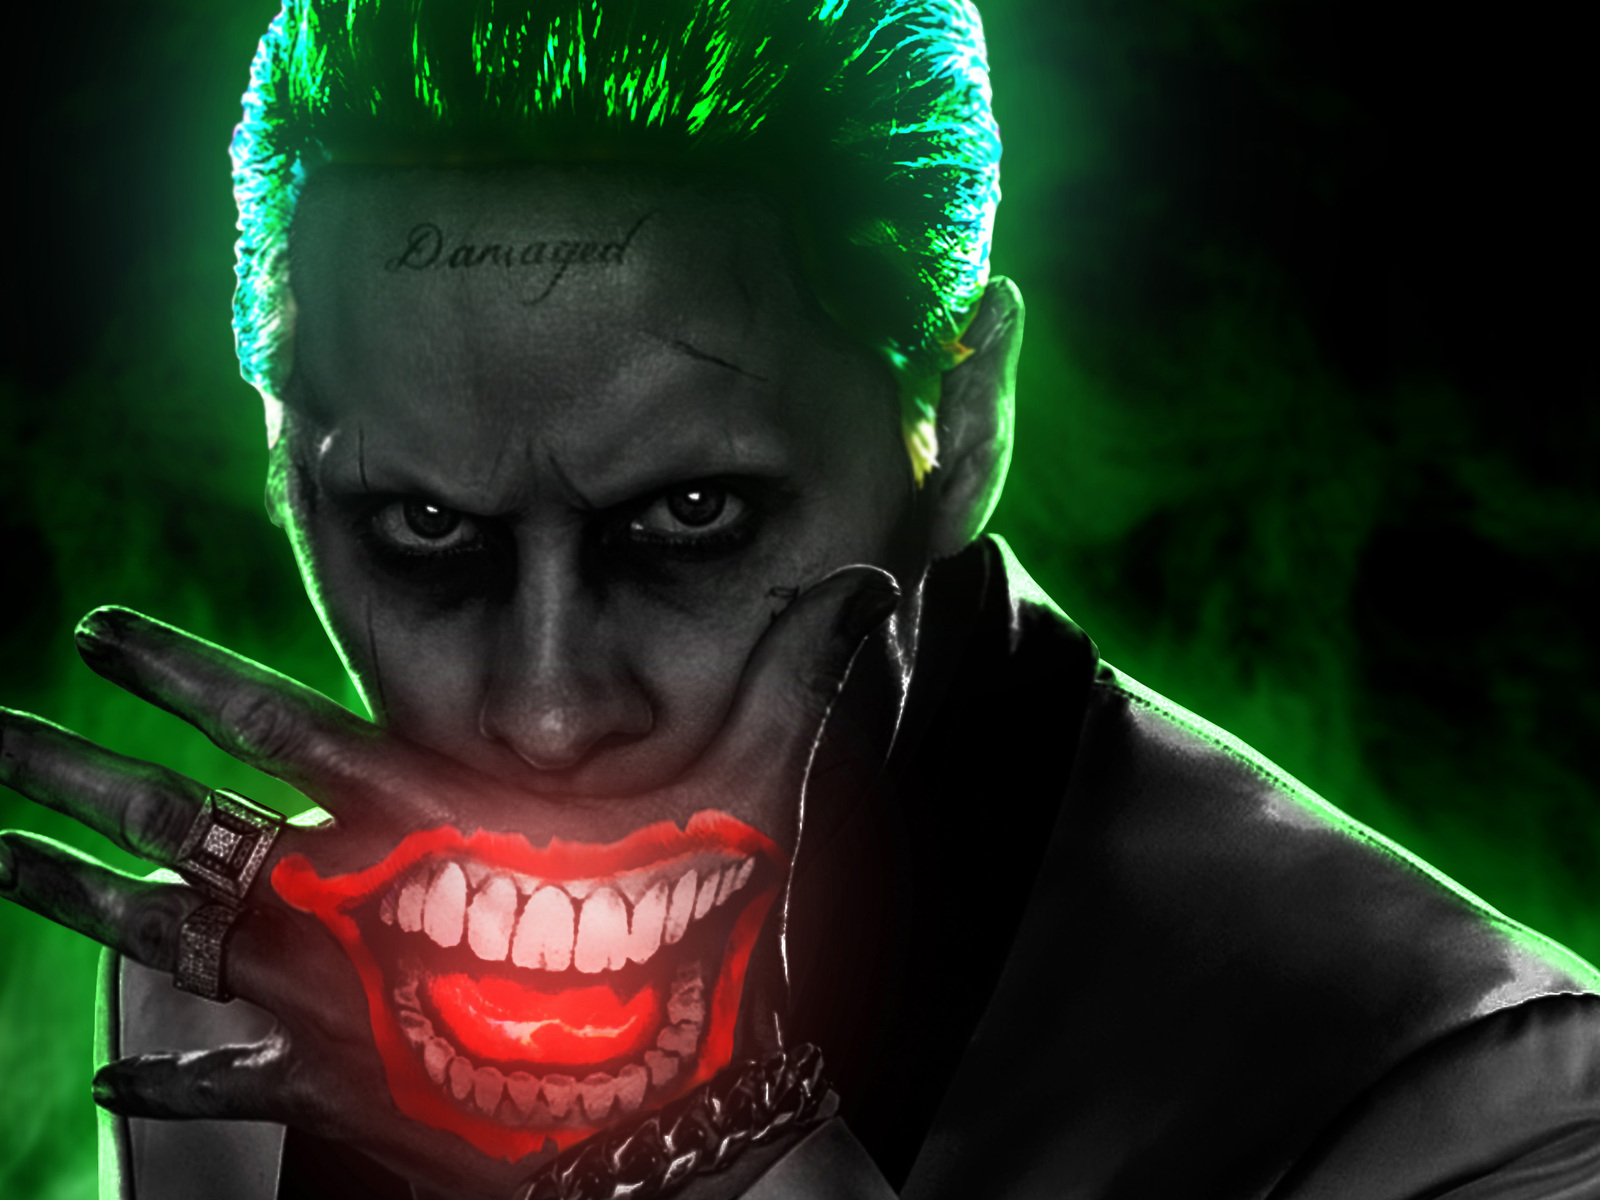 1600x1200 Jared Leto Joker 4k 1600x1200 Resolution HD 4k Wallpapers, Images, Backgrounds, Photos